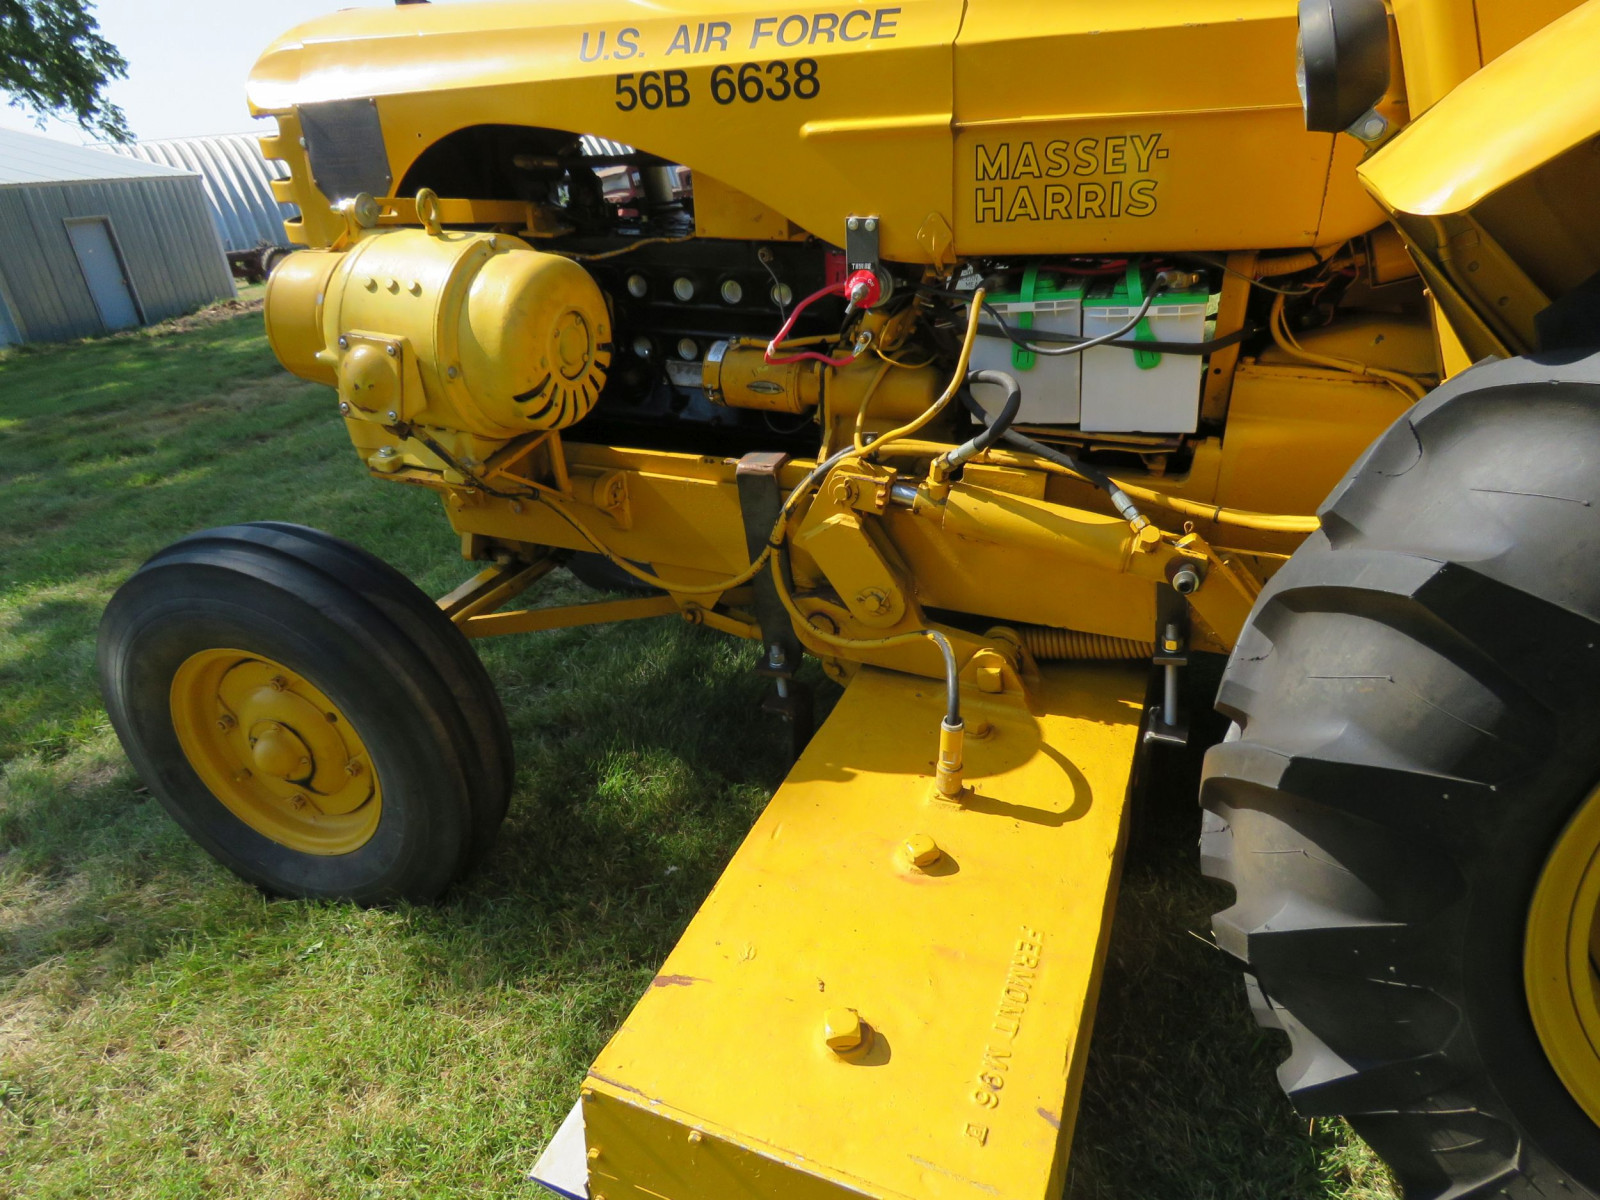 1956 Massey Harris 333 Tractor with Sabre Magnetic Sweeper - Image 12